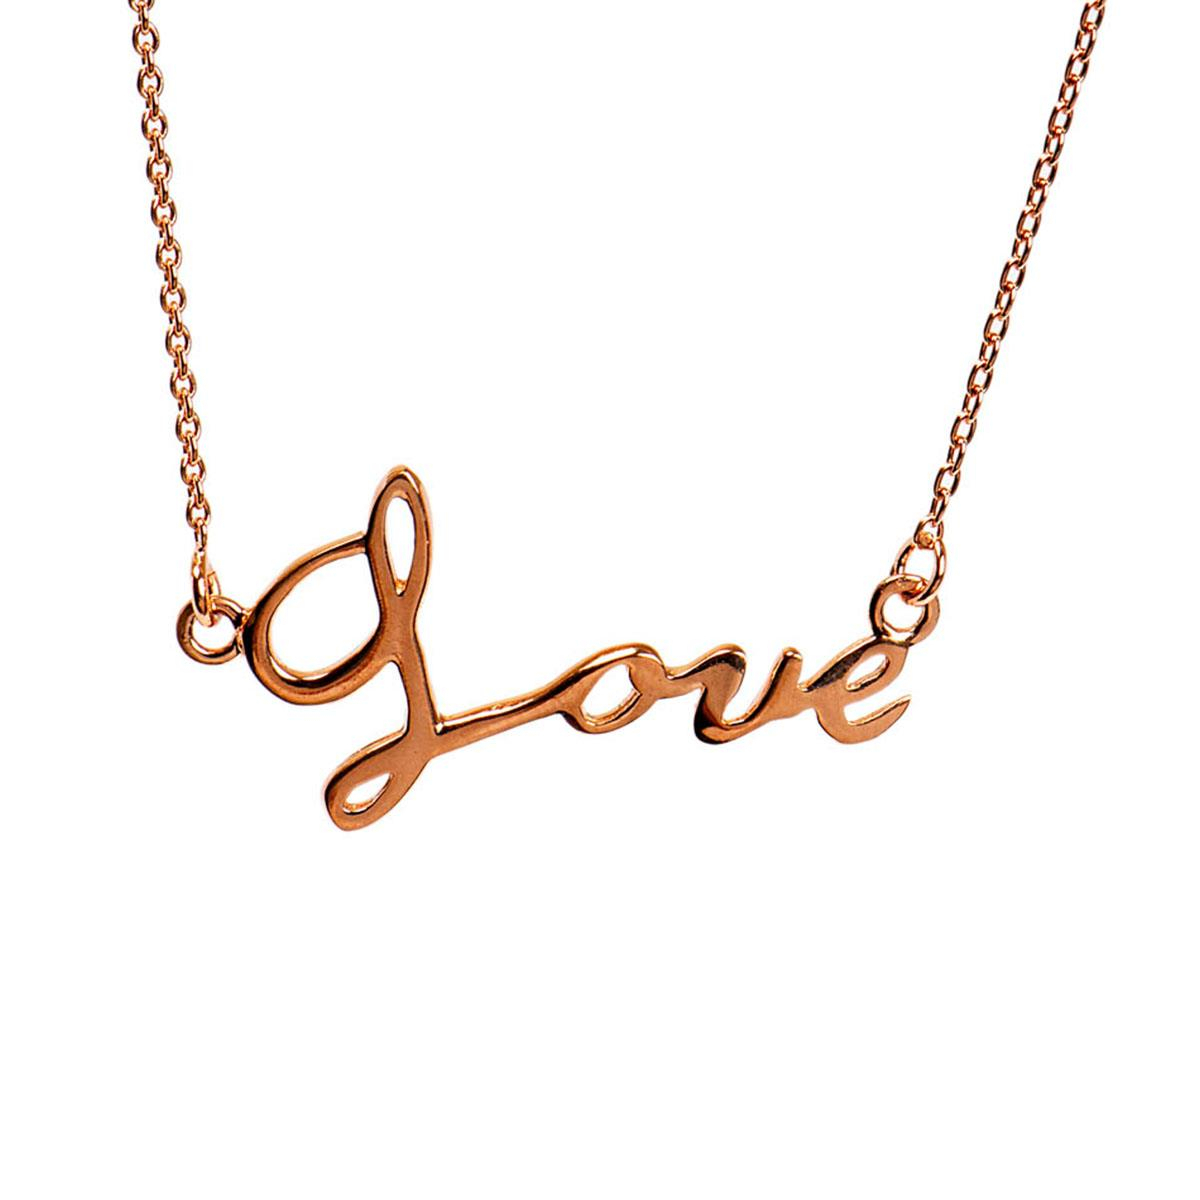 Love Script Necklace | Romantic Gifts For Her | Mantra Jewellery Regarding Most Recent Loved Script Necklaces (View 10 of 25)